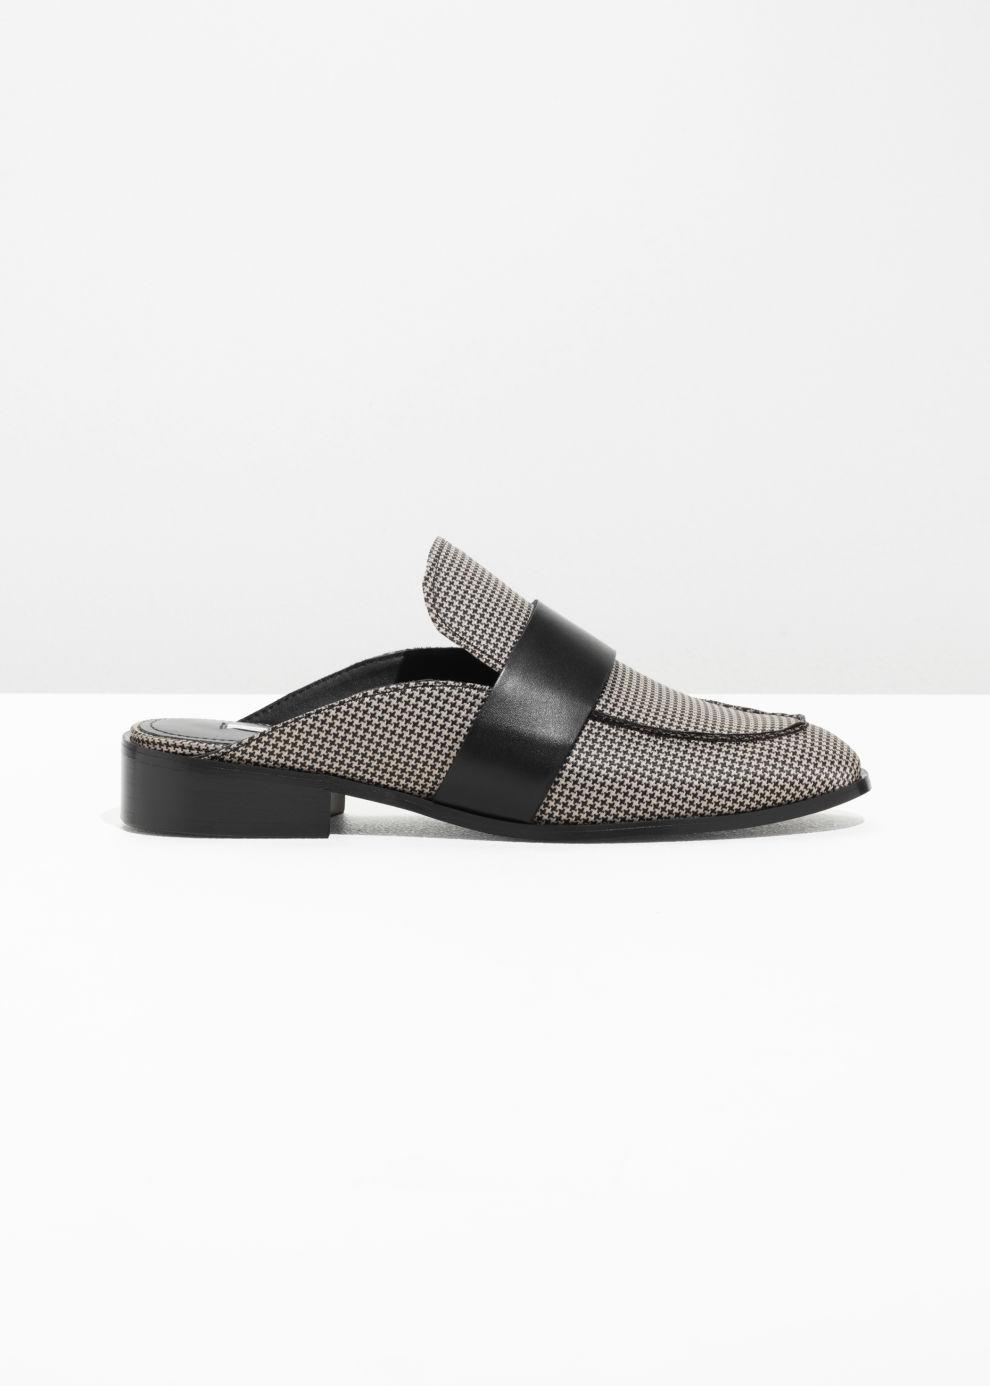 fbd43a04a2c   Other Stories Slip-on Loafers in Gray - Lyst